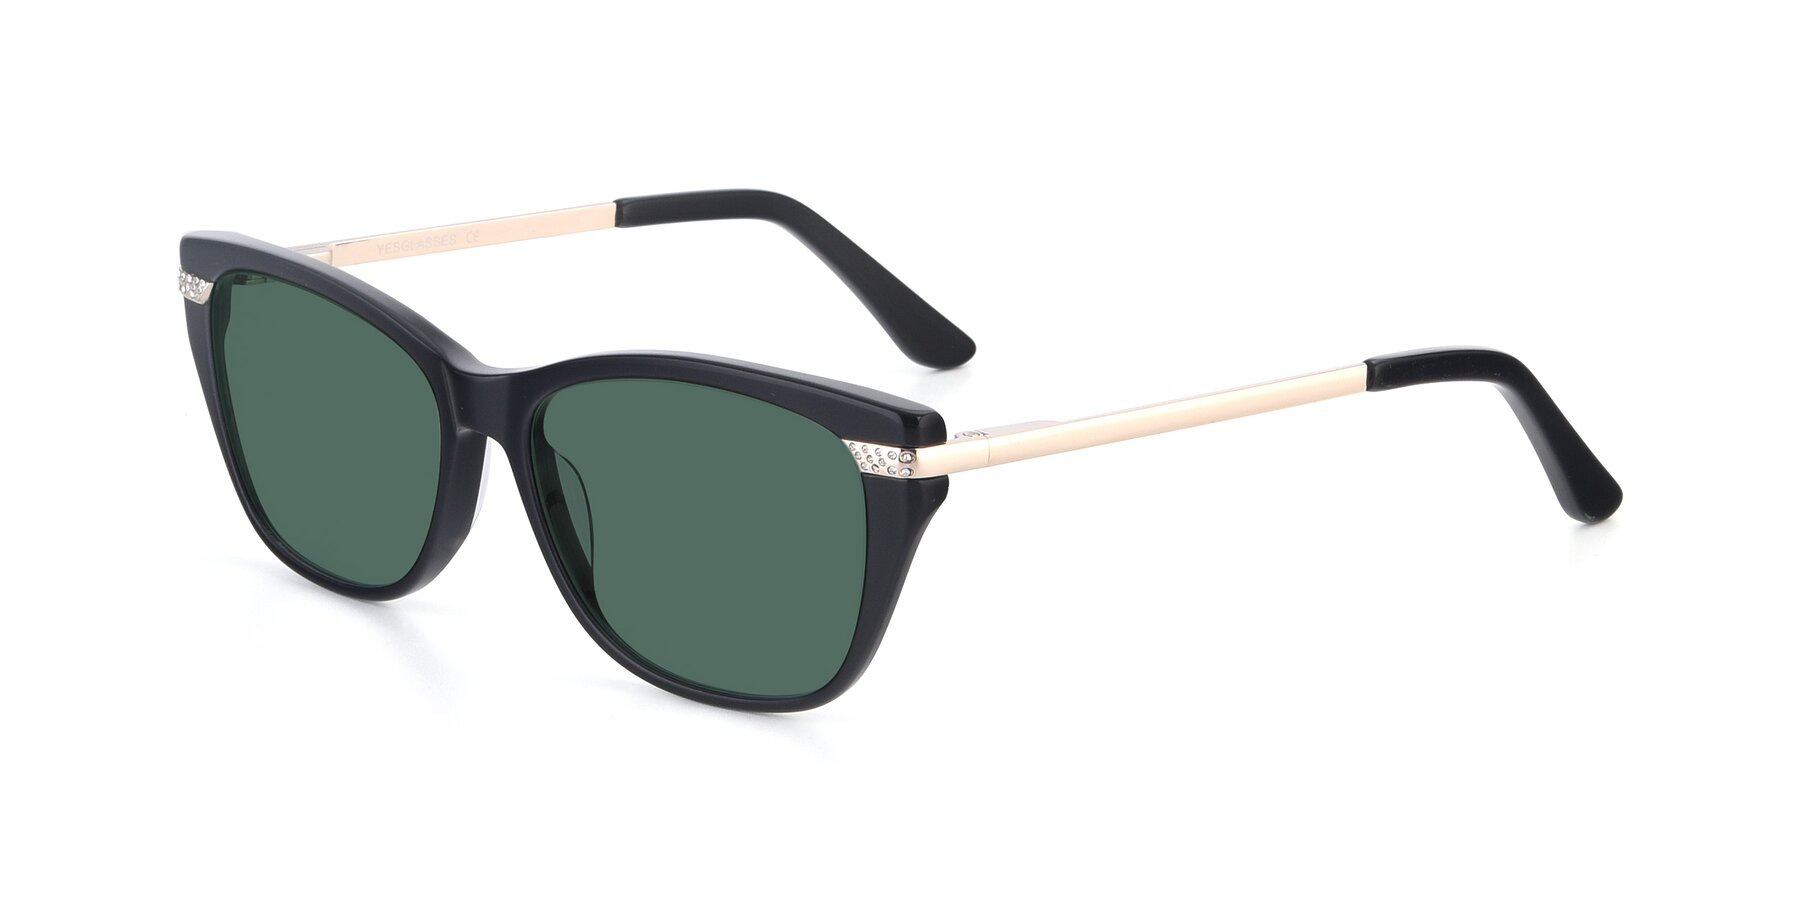 Angle of 17515 in Black with Green Polarized Lenses